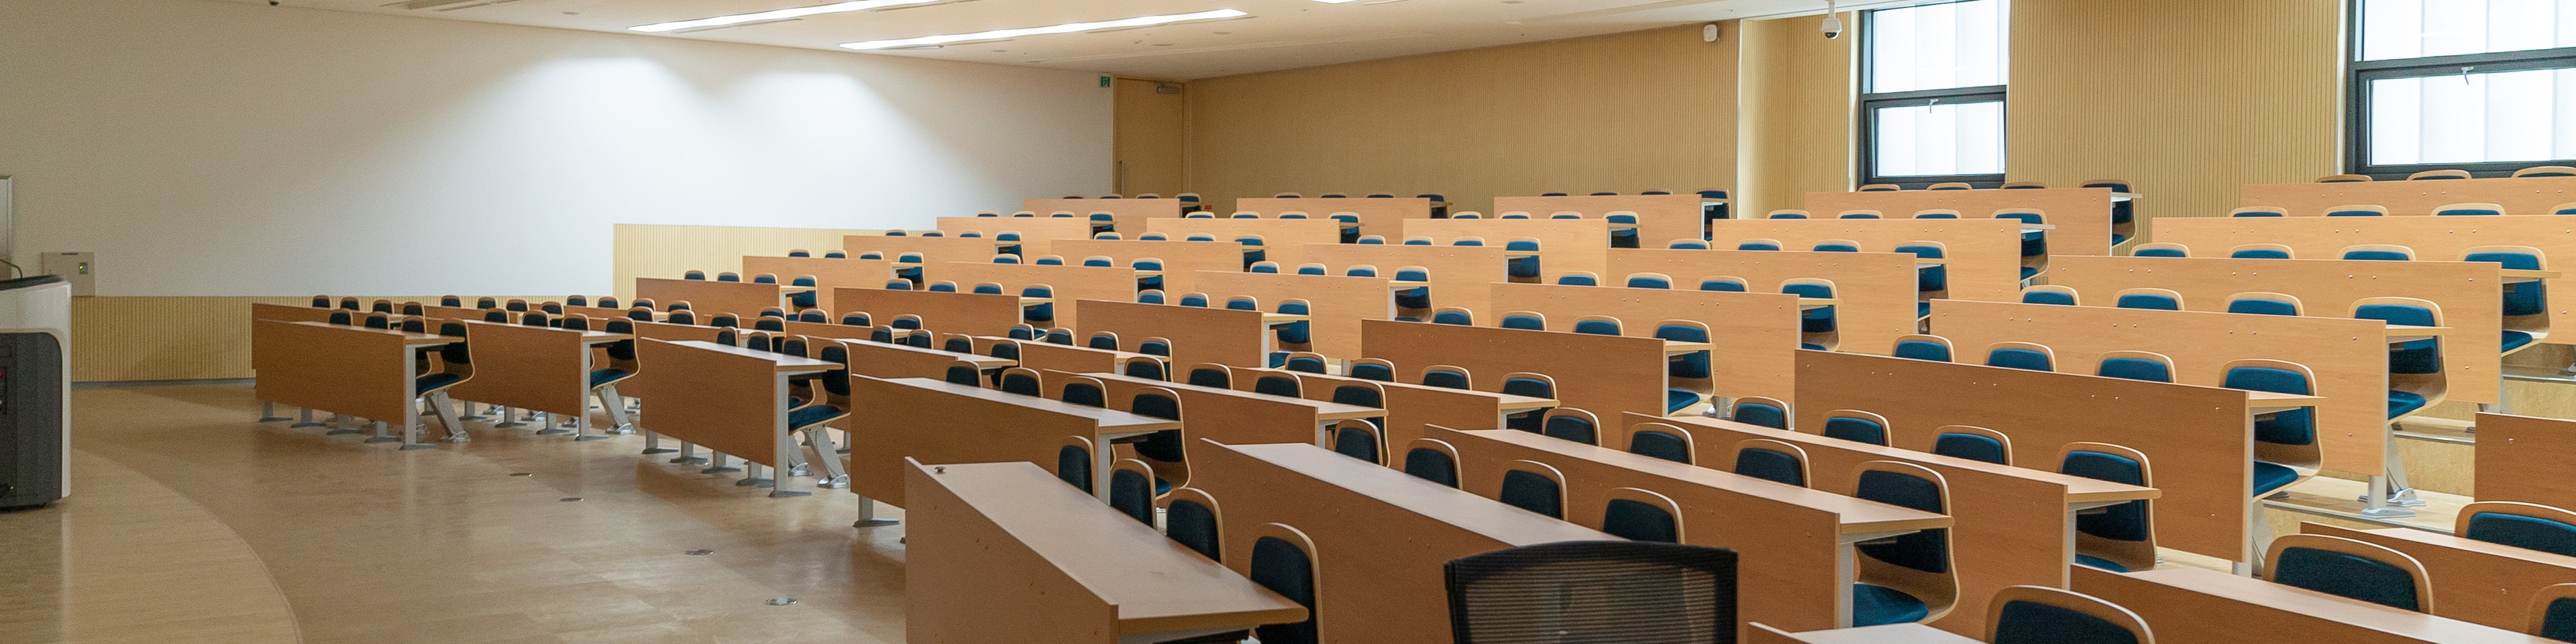 Large, empty lecture hall